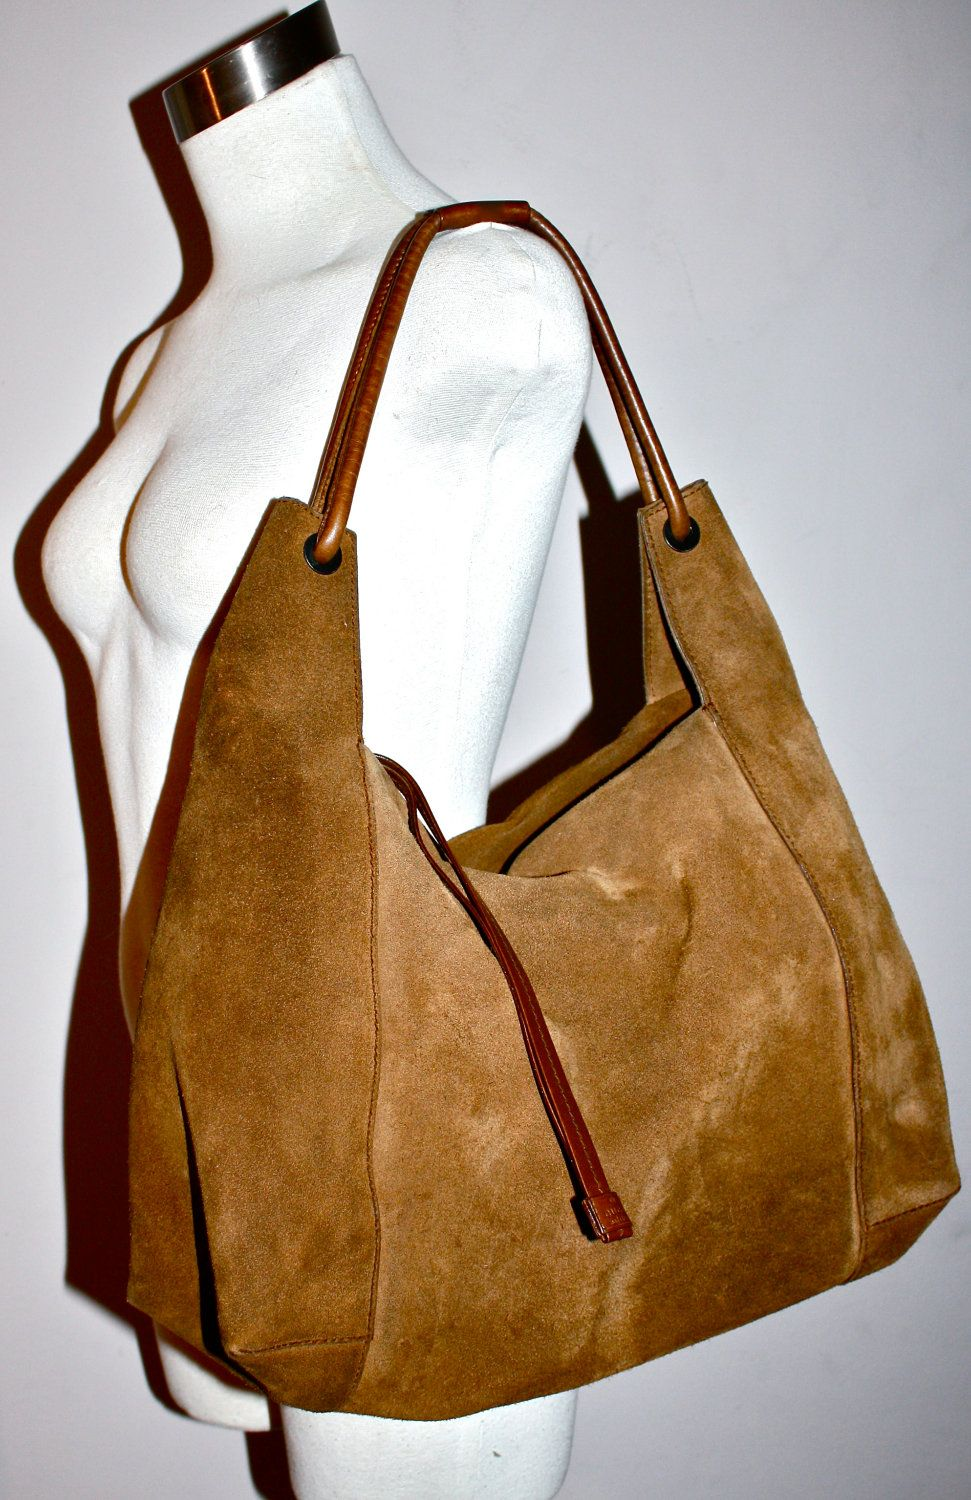 d5957b5a9b2f Huge VINTAGE GUCCI Authentic Brown Suede Slouchy Leather Hobo Bag ...